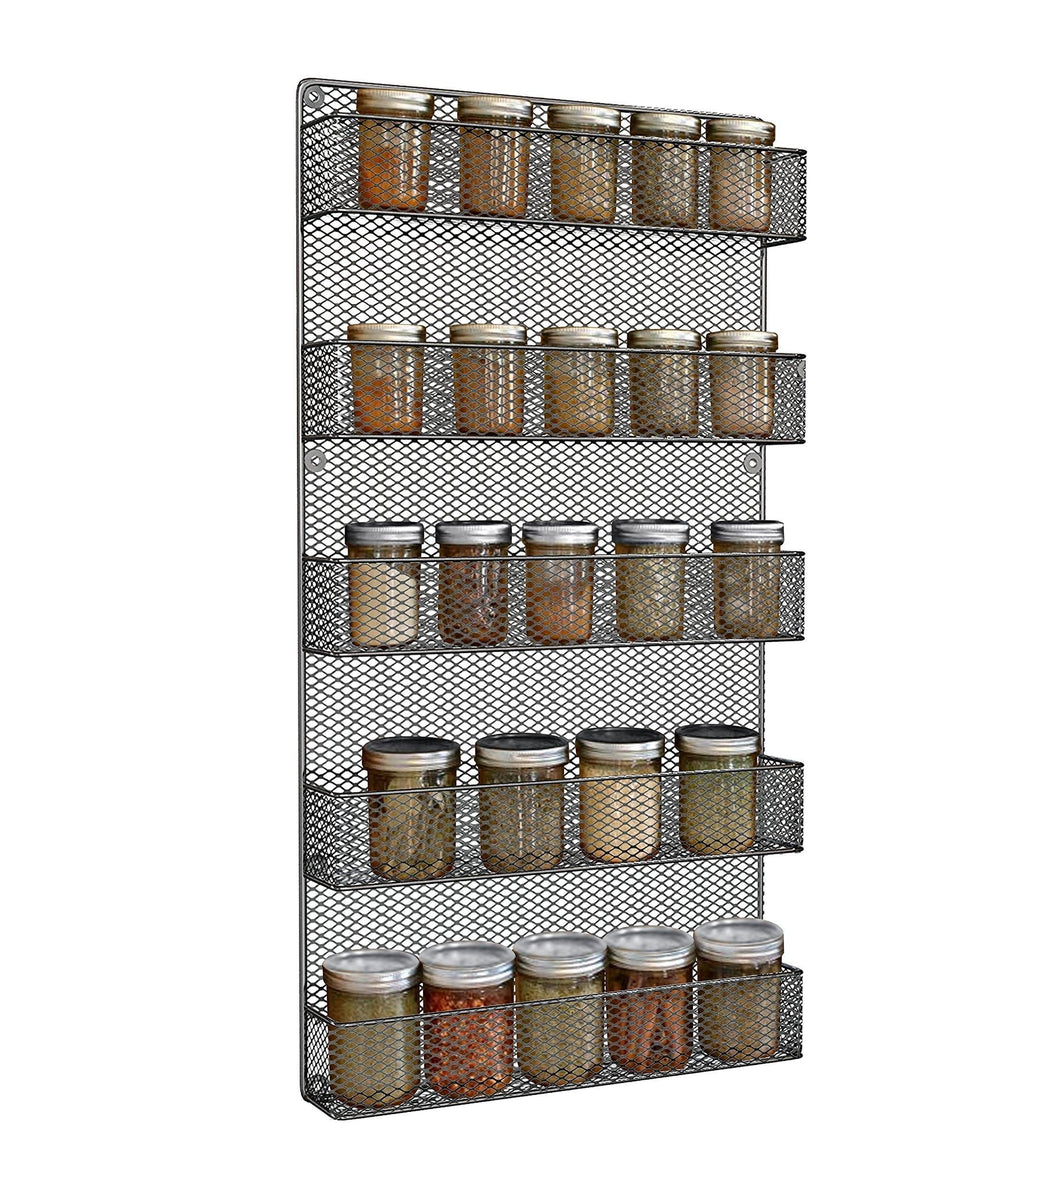 Spice Rack Wall Mount- Spice Rack Organizer- Use as a Wall Mounted Spice Rack- Great Storage Capacity for Kitchen Spicy Shelf- The Best Spice Rack -5 Tier Shelves